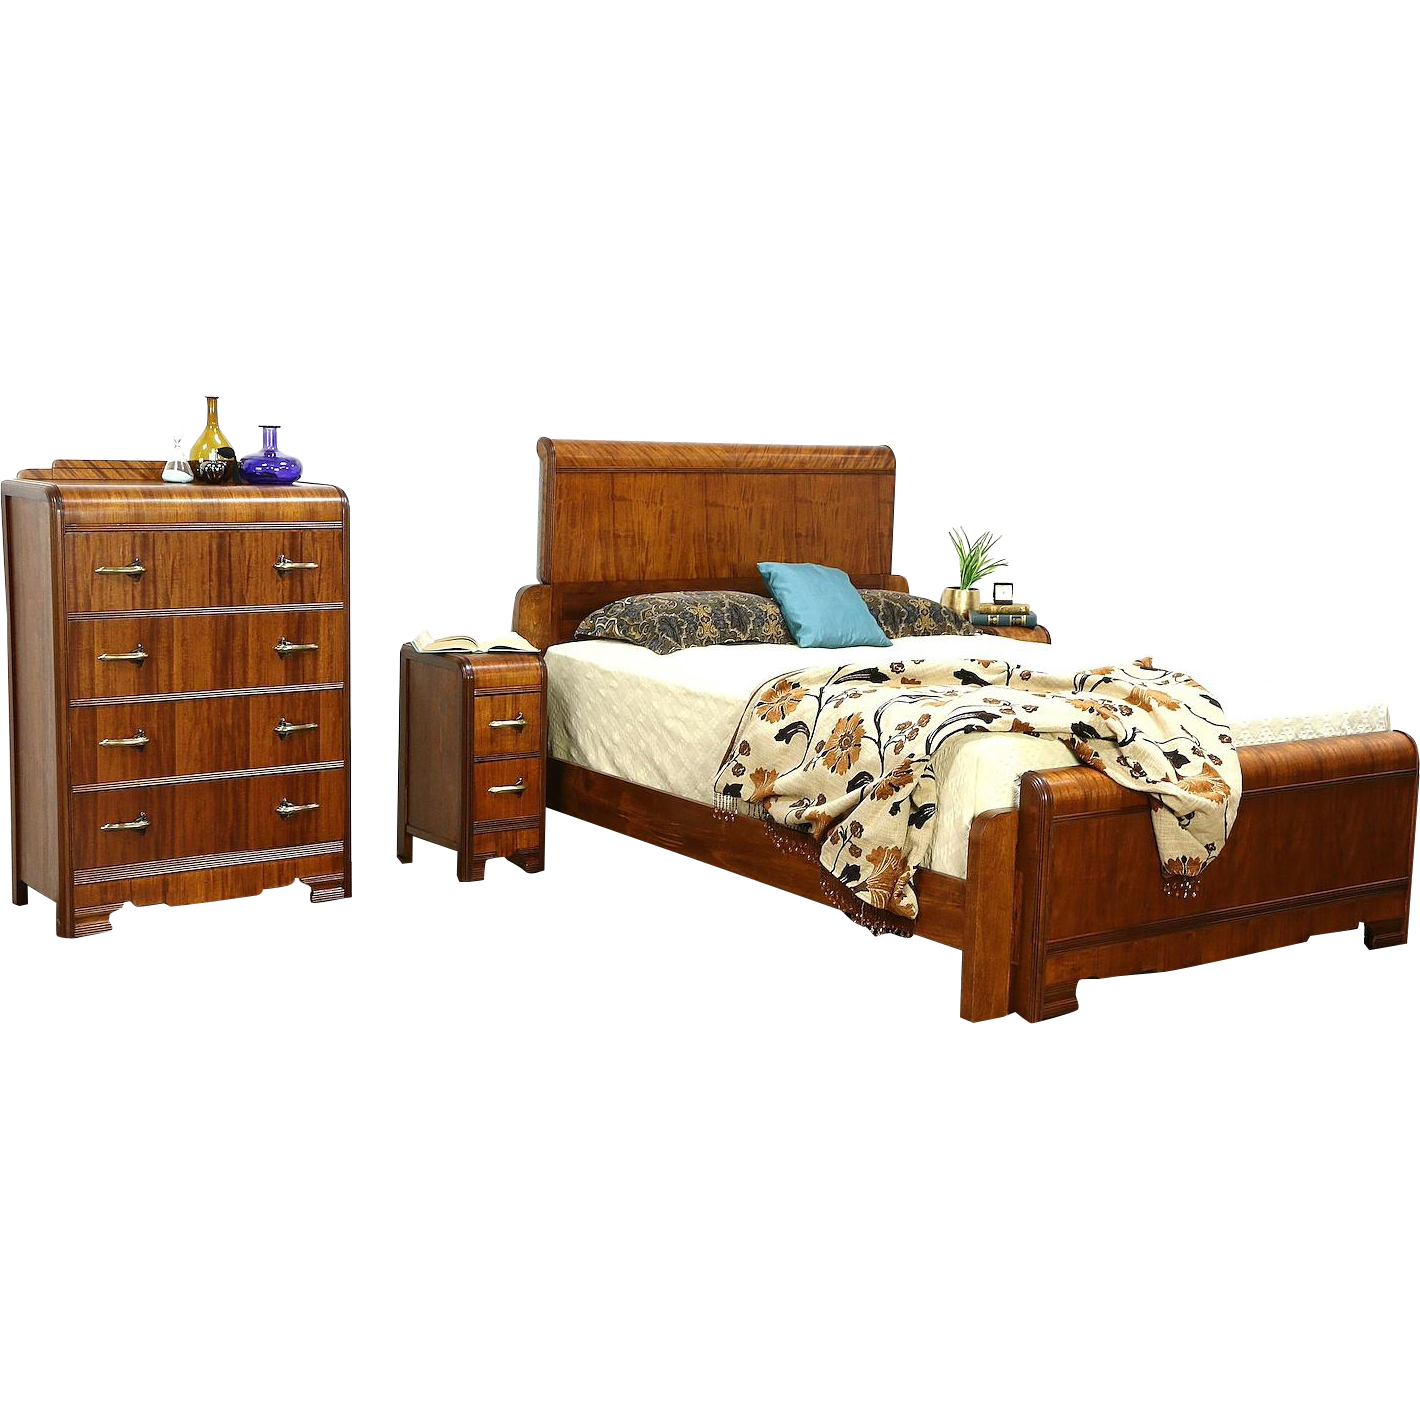 A waterfall design art deco bedroom set from the late us